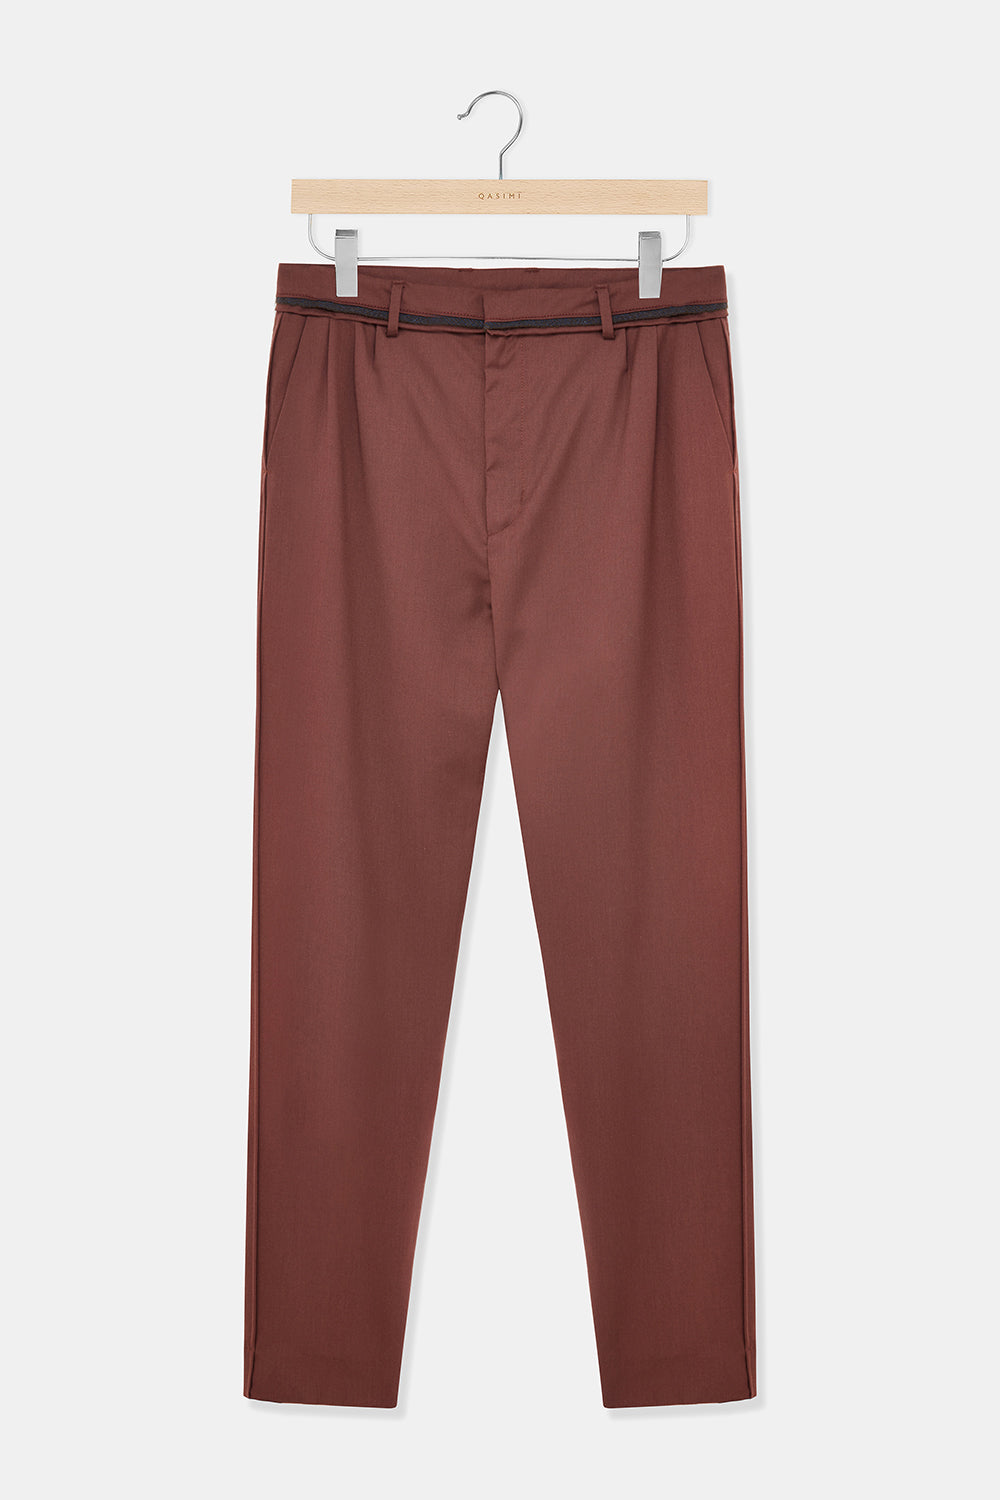 THARU TAPERED TROUSER